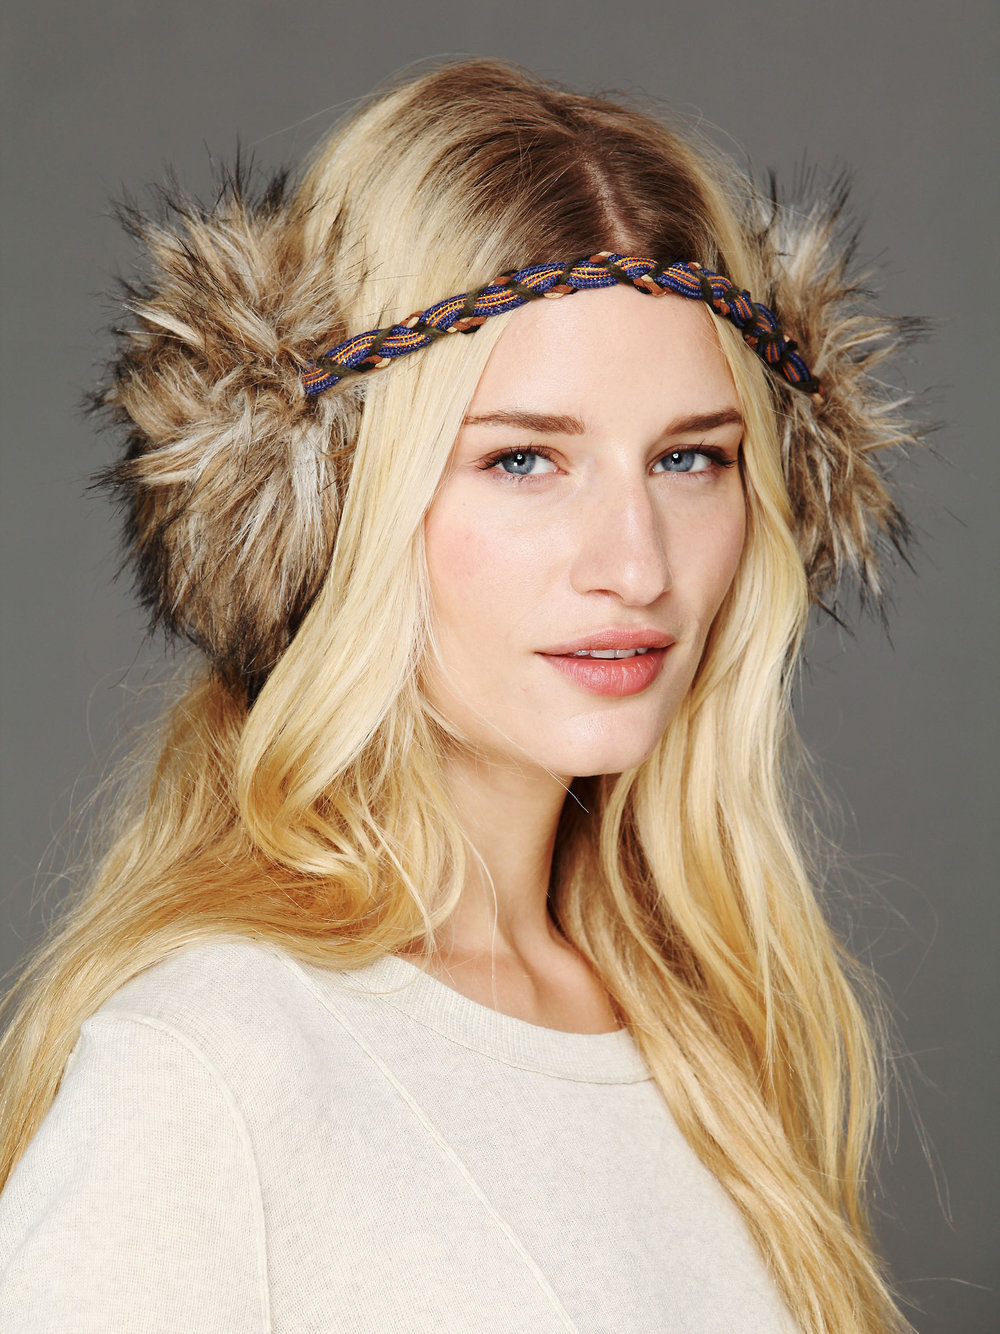 Free People Earmuffs $34.00 Freepeople.com